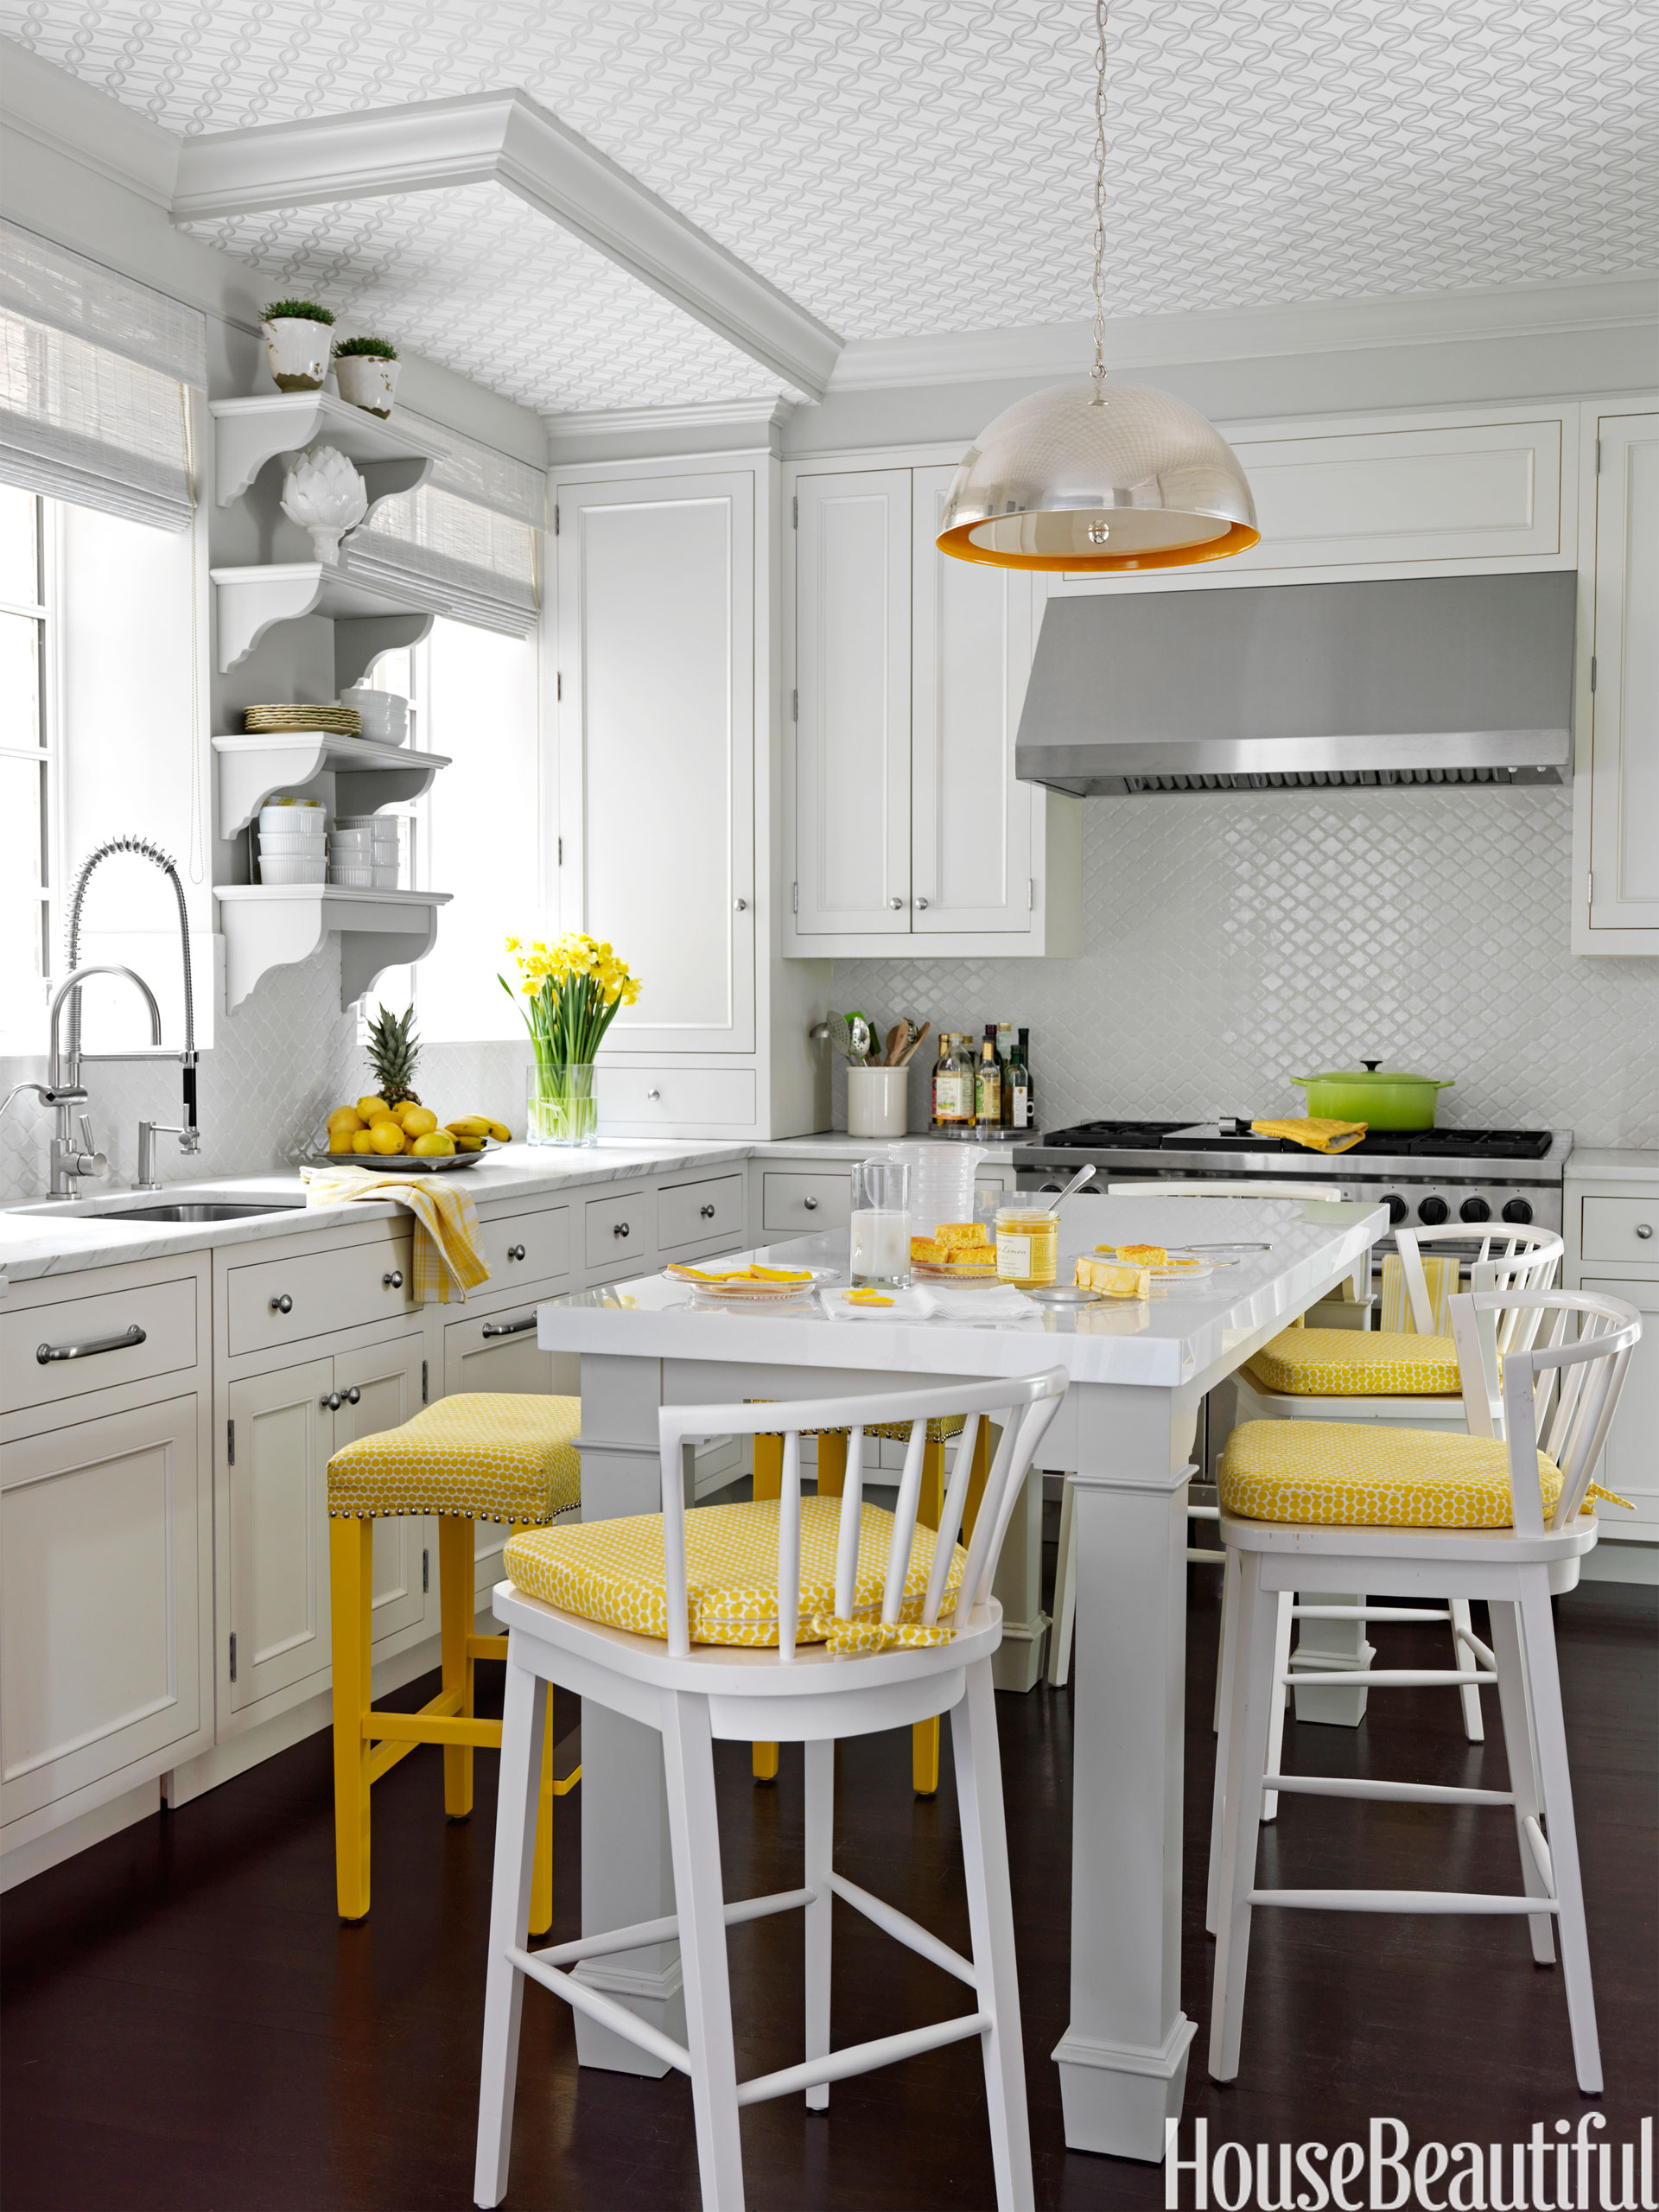 54c05fbea6d39   x white kitchen with yellow accents 0512 murphy07 yenzal s2